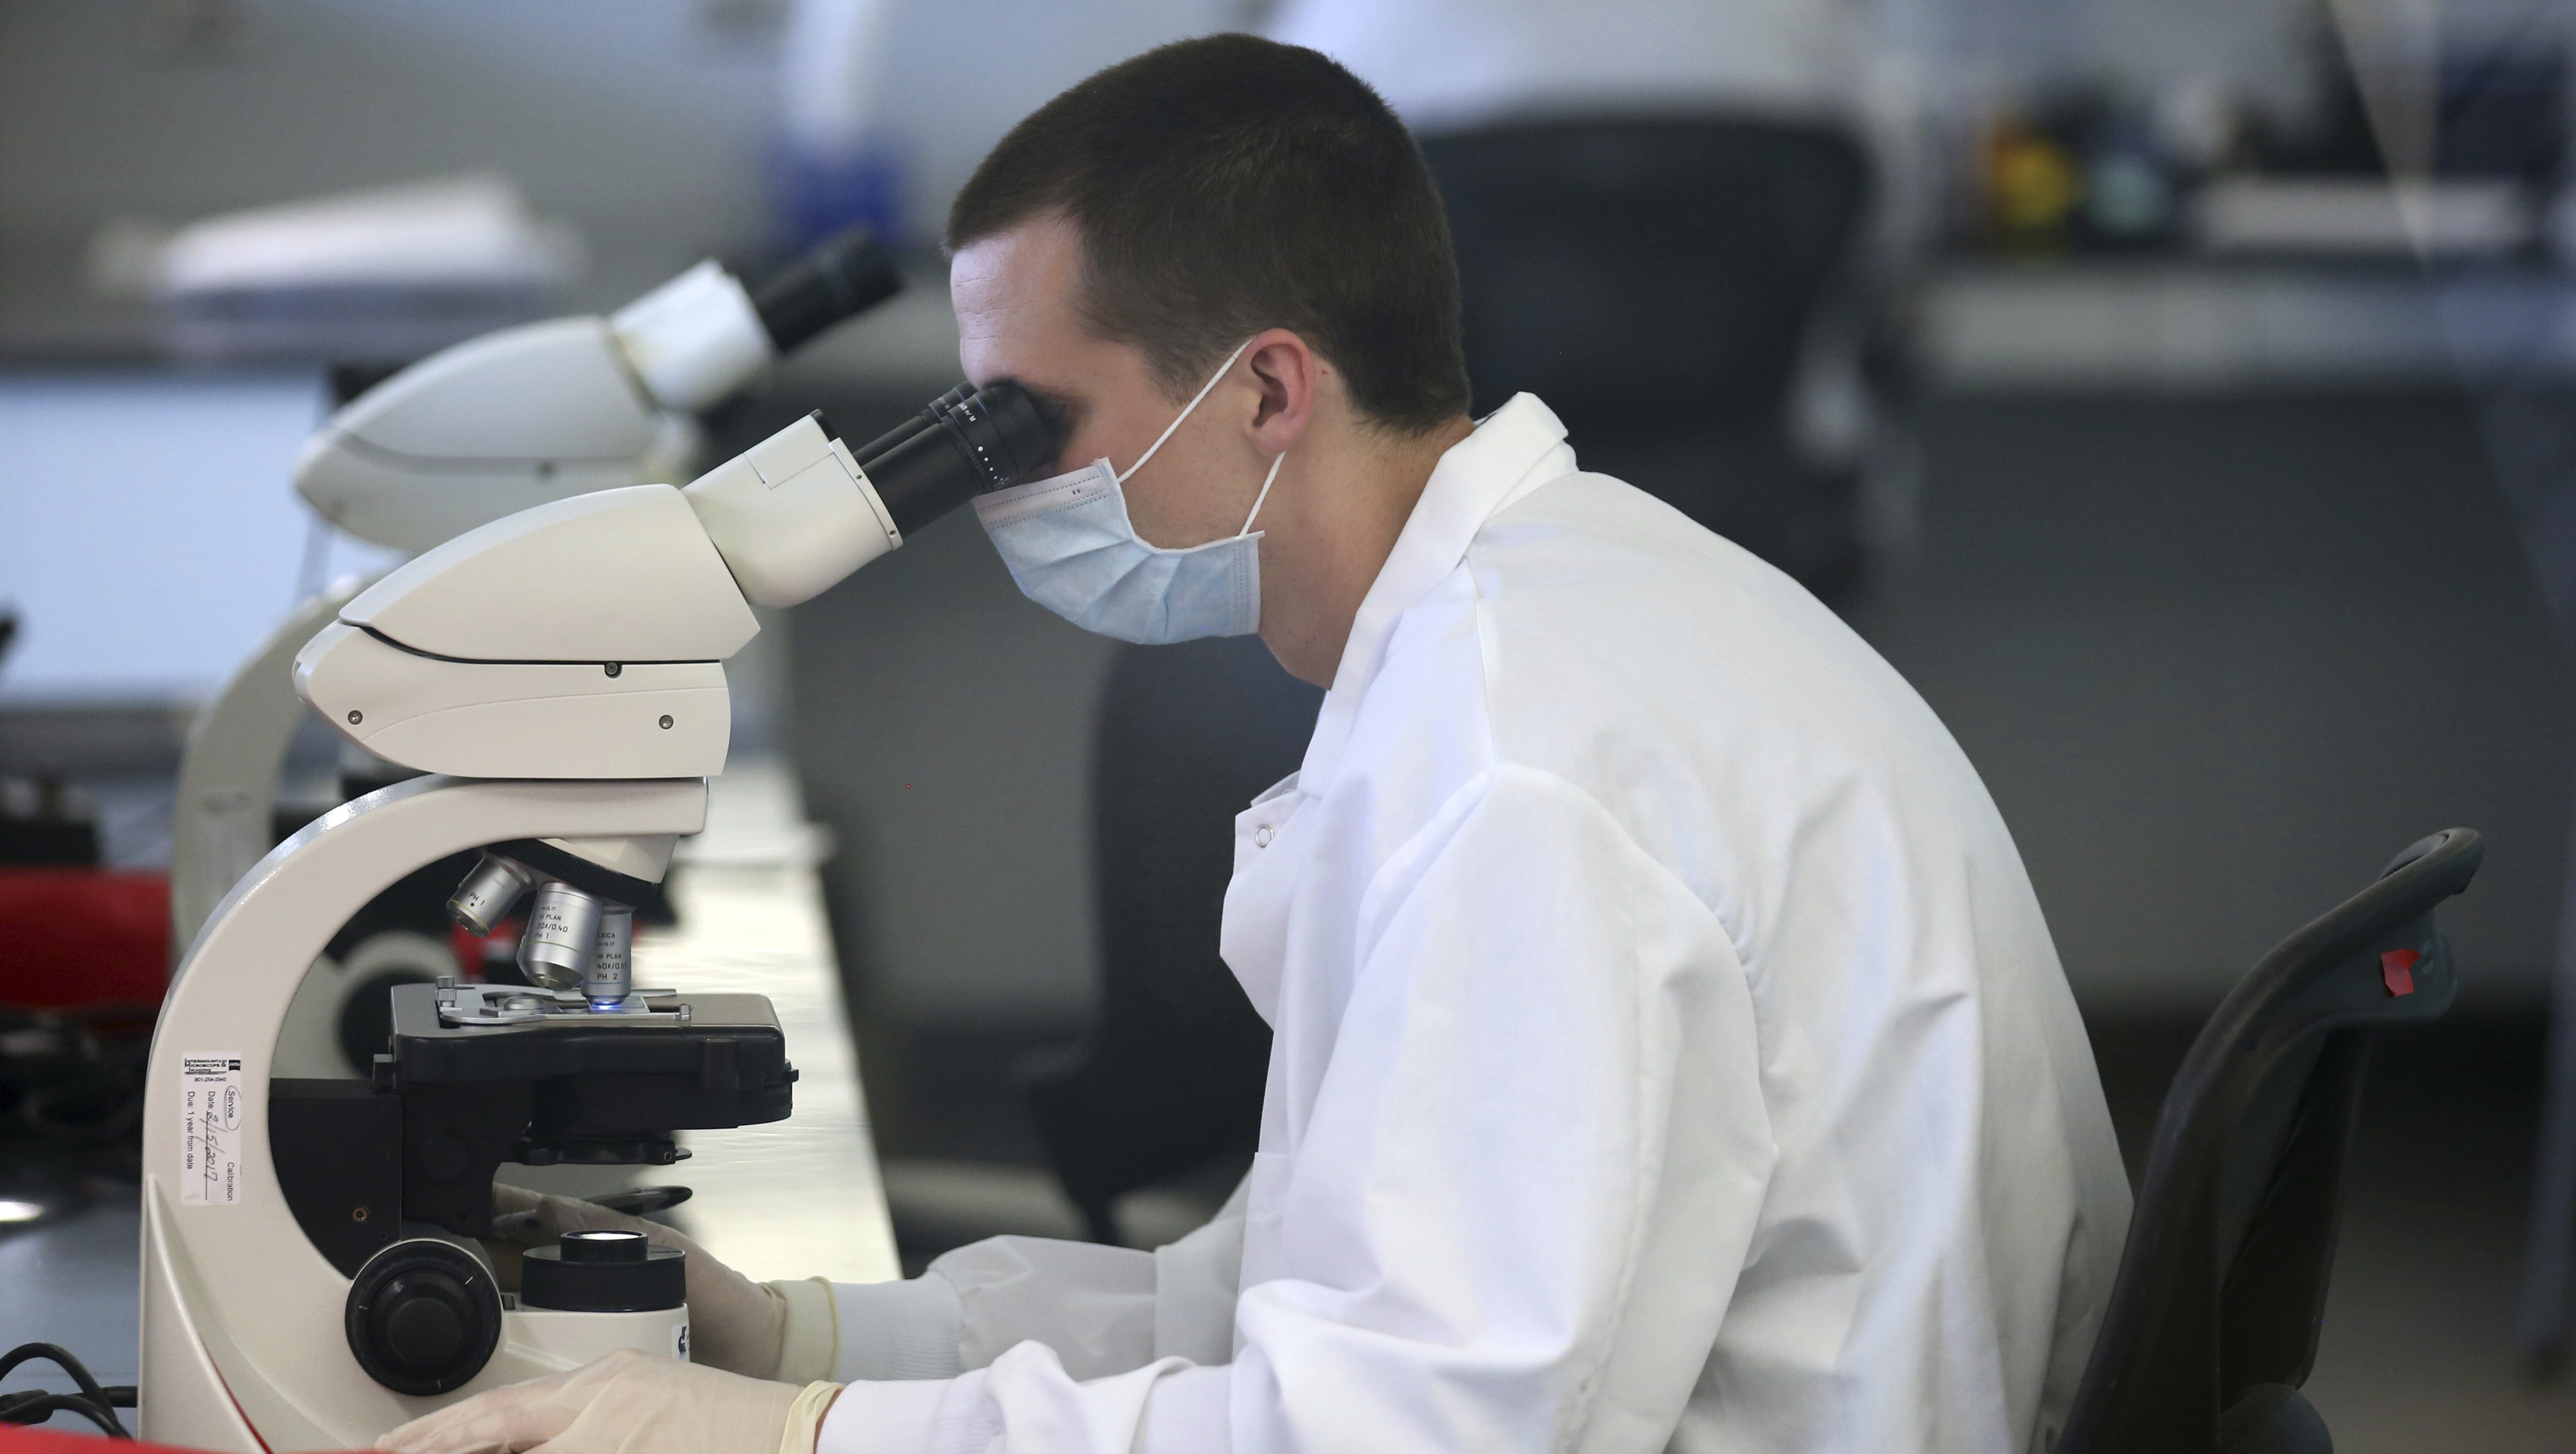 A forensic scientist looks through a microscope at the state crime lab, Thursday, July 6, 2017, in Taylorsville, Utah. Kidnapping victim Elizabeth Smart and Sen. Orrin Hatch, R-Utah, toured the new state crime lab Thursday. Smart is throwing her support behind Hatch's proposal that would speed up DNA testing at crime labs. (AP Photo/Rick Bowmer)